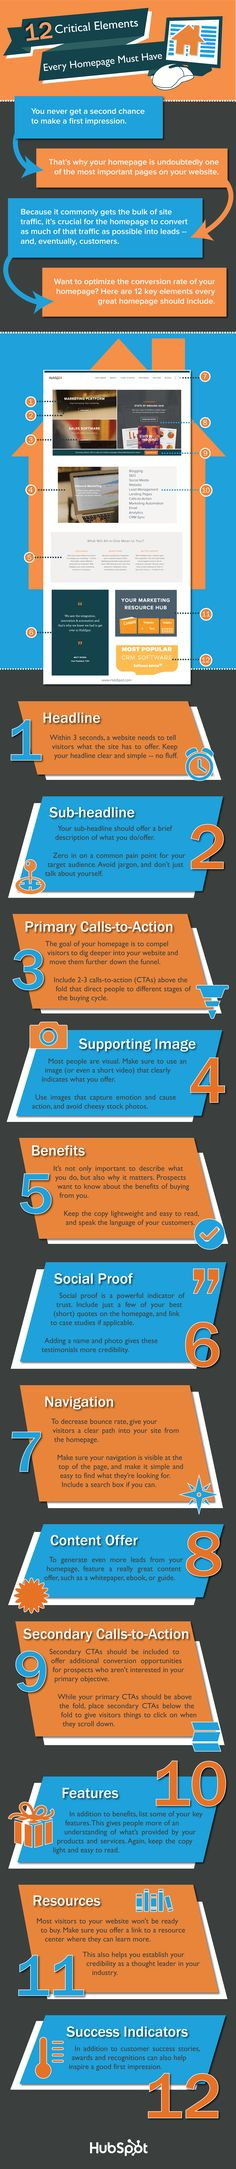 12 Critical Elements Your Law Firm Website Home Page Must Have Marketing Digital, Inbound Marketing, Internet Marketing, Online Marketing, Lawyer Marketing, Affiliate Marketing, Media Marketing, Web Design Tips, Web Design Inspiration